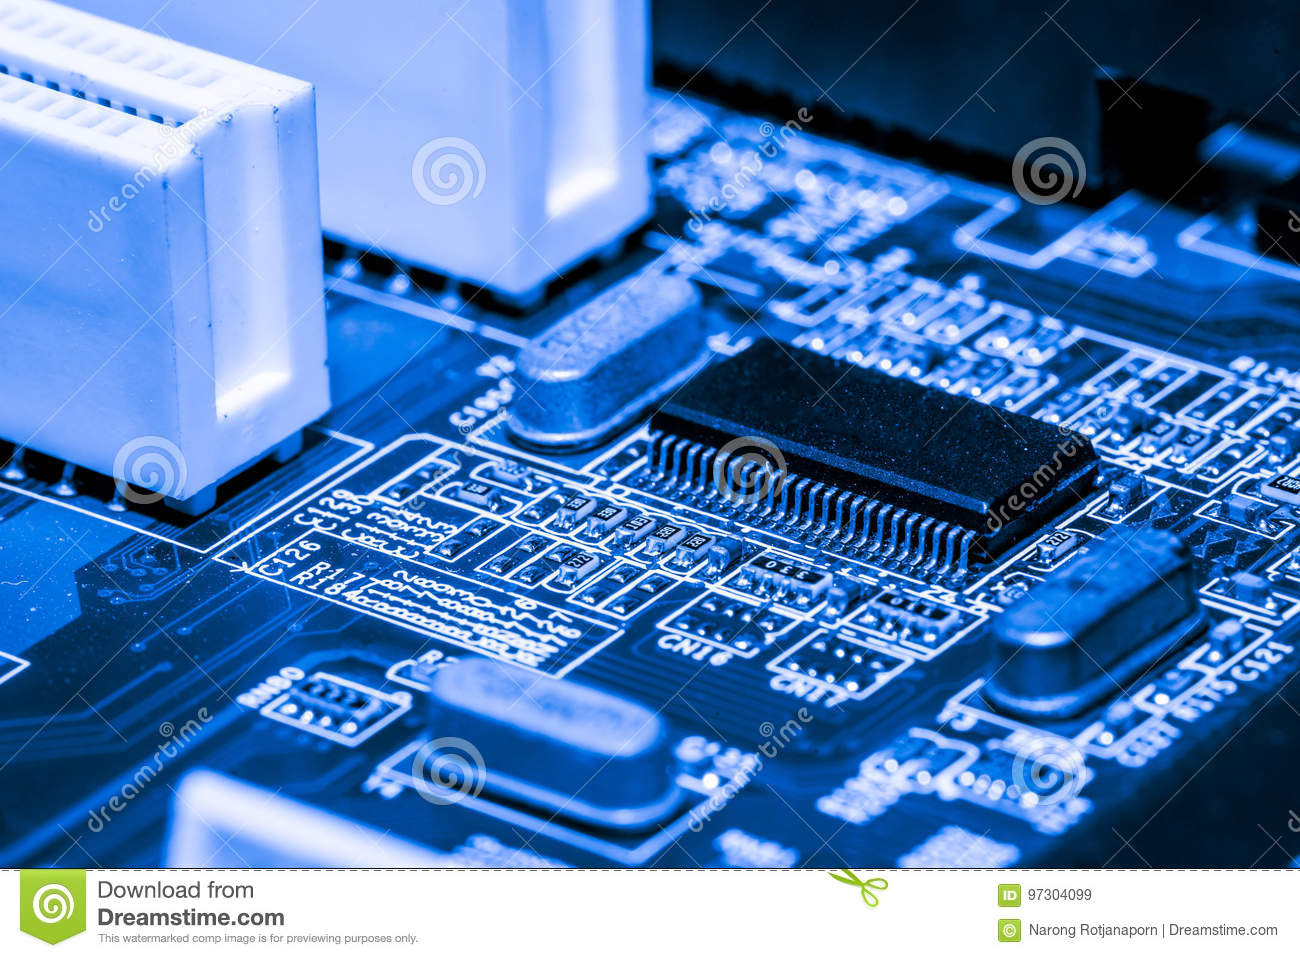 Close up of Circuits Electronic on Mainboard Technology computer background logic board,cpu motherboard,Main board,sys